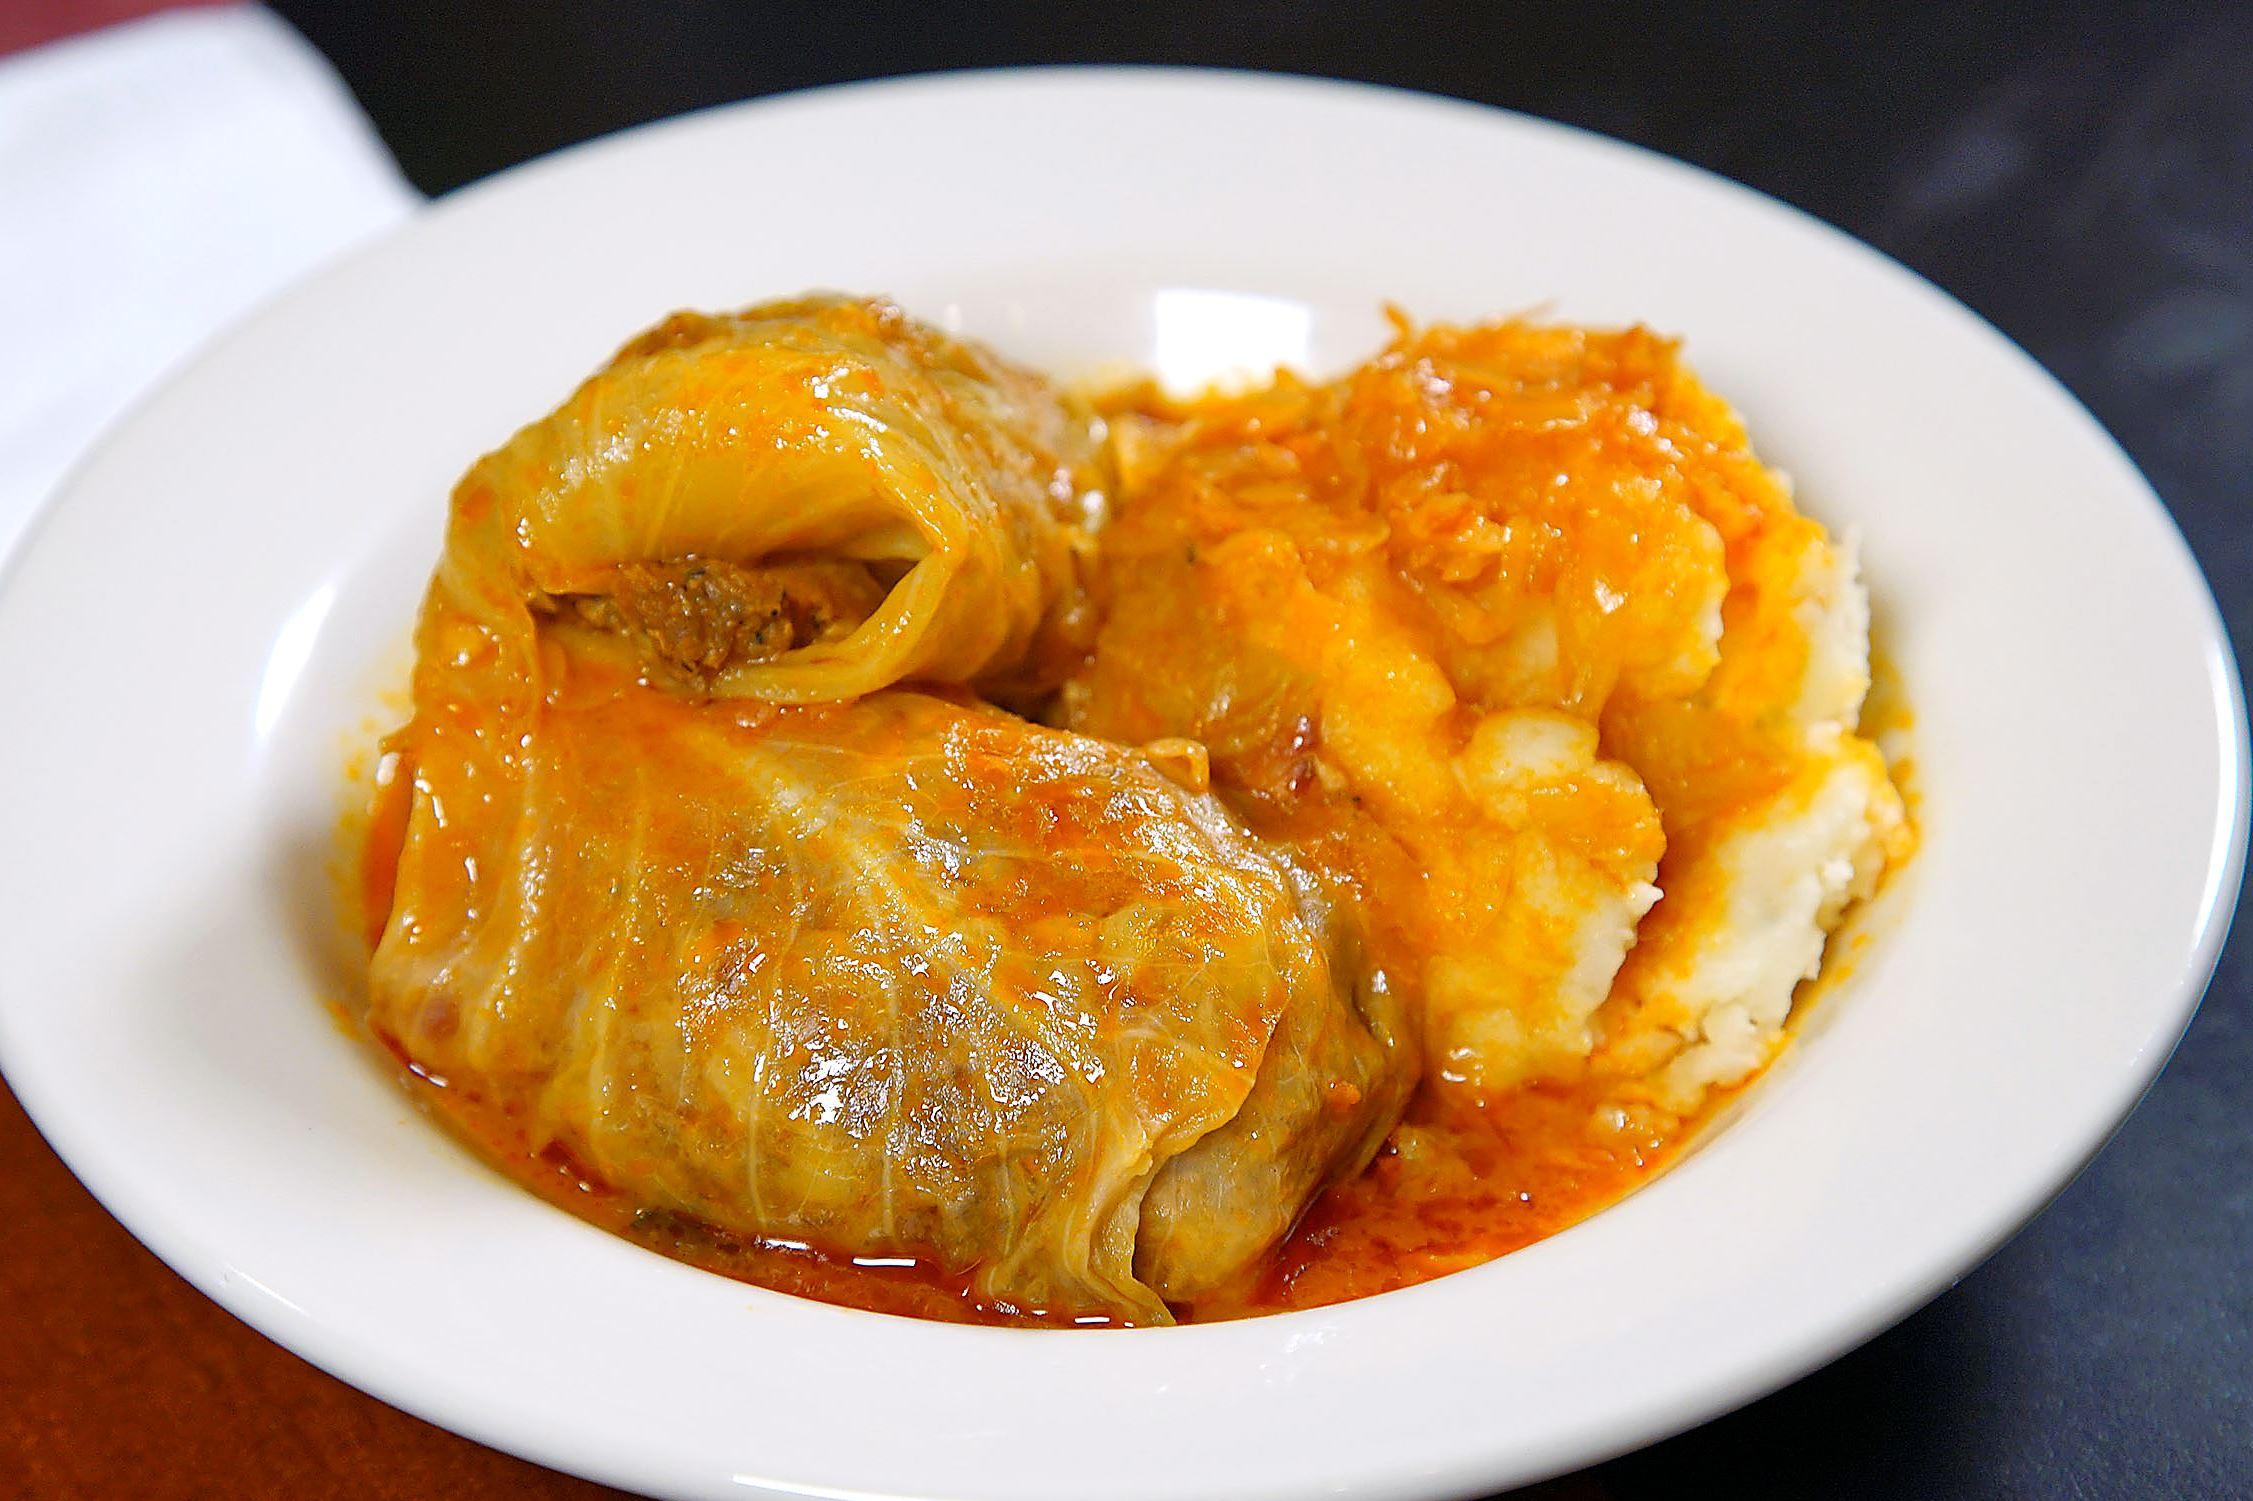 Bizarre_Emil_cabbage Cabbage rolls from Emil's Lounge are stuffed with a mixture of pork, beef, rice and seasoning.